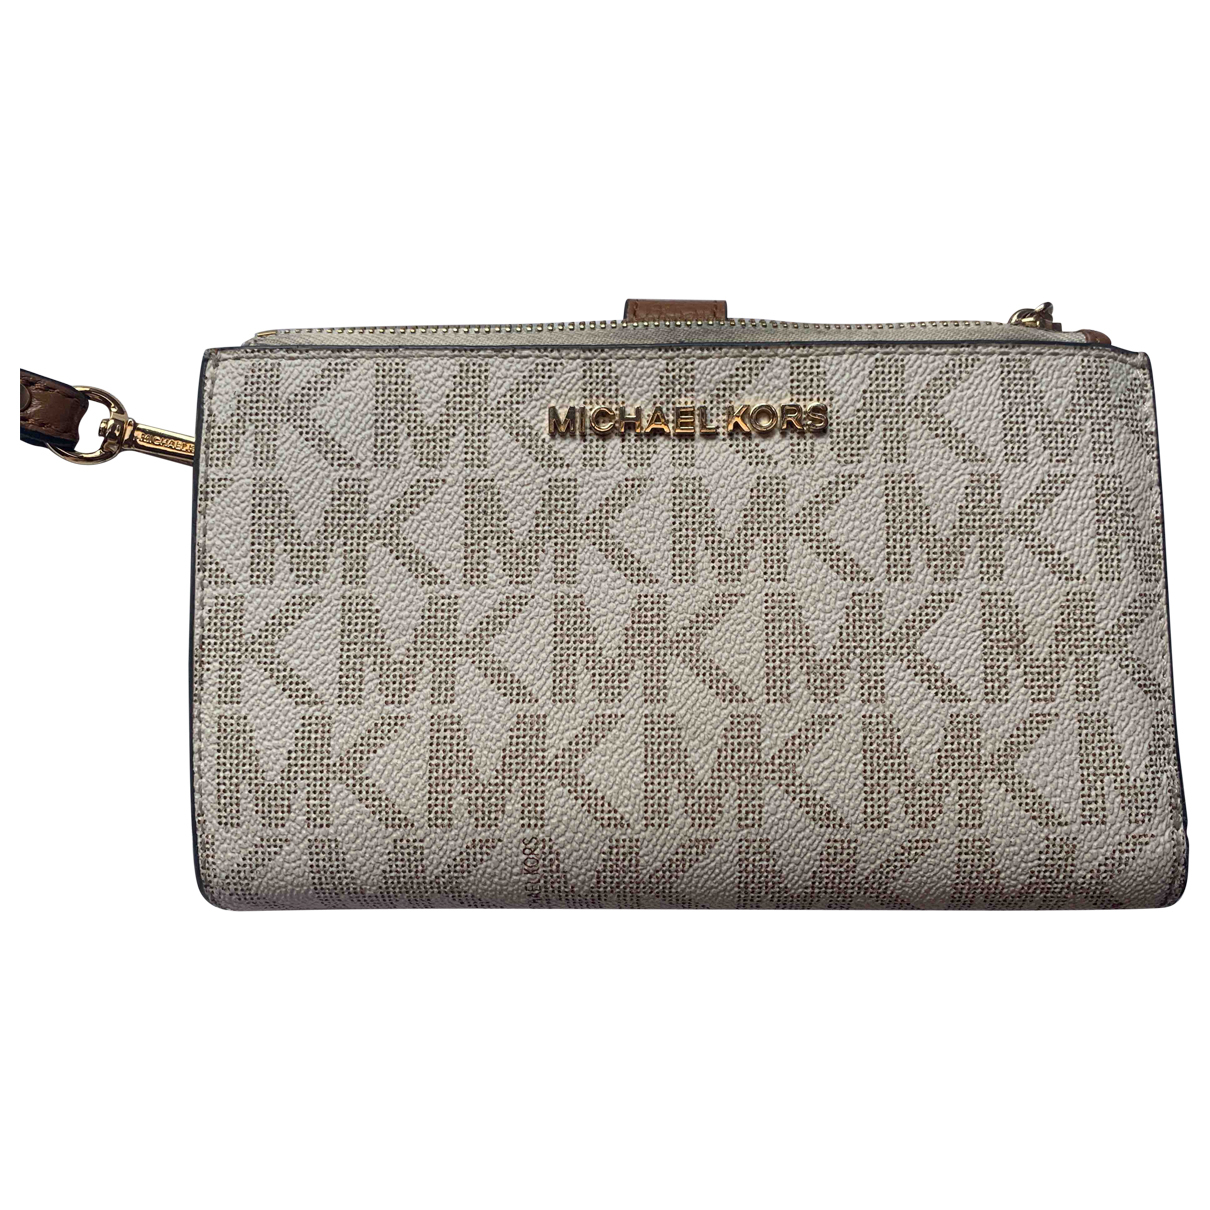 Michael Kors \N Beige Patent leather wallet for Women \N